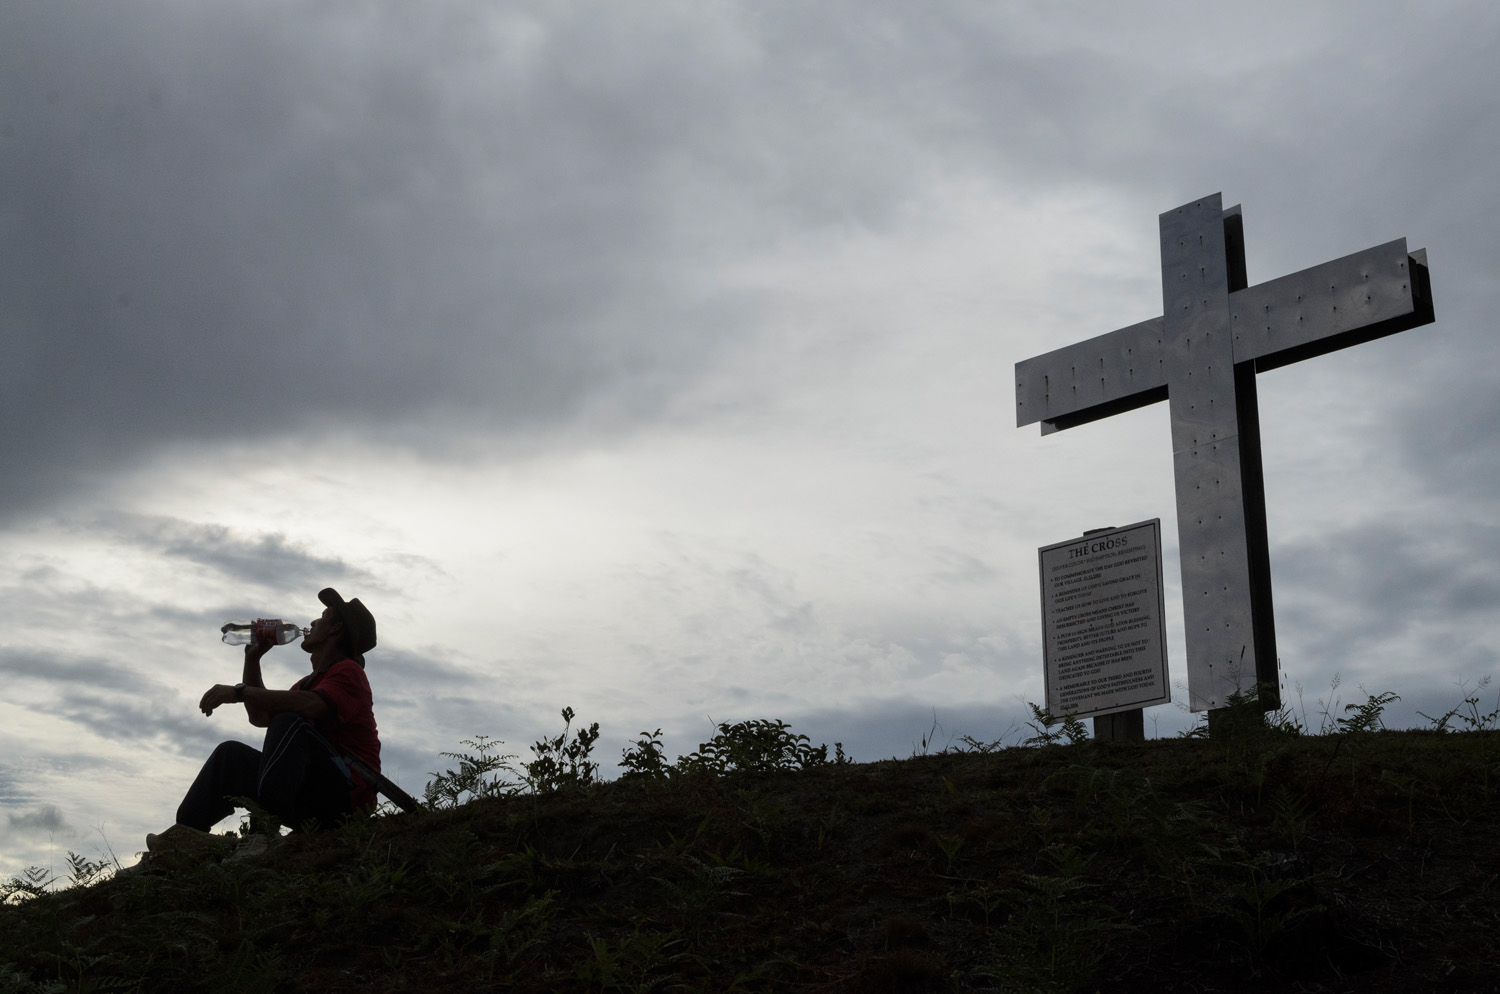 Walter Paran takes a drink of water atop a hill overlooking Pa Lungan village deep in the Kelabit Highlands of Sarawak, Malaysia. The cross is a recent addition, and a reflection of the local christian culture, as opposed to the majority Islam of Malaysia.